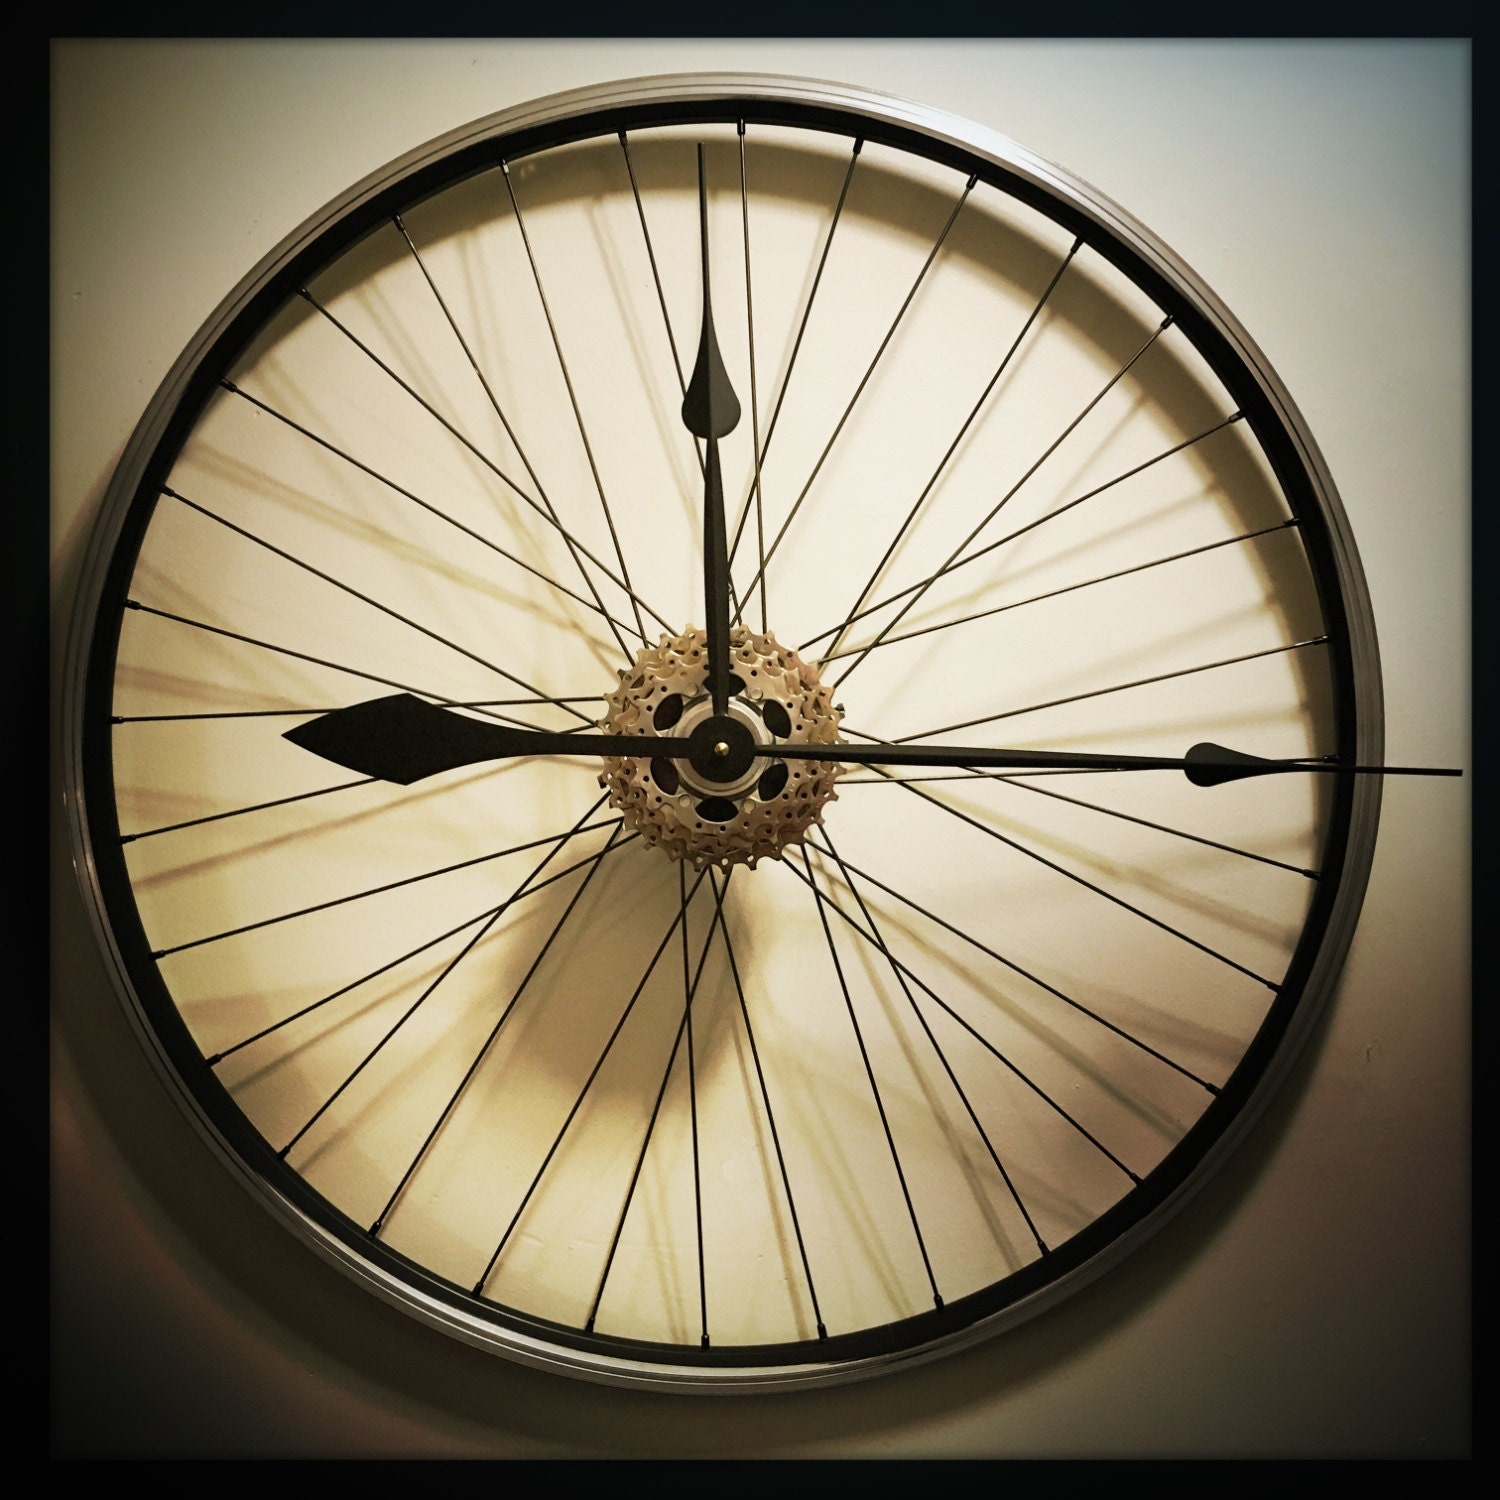 Bicycle Wheel Clock Large Wall Clock Steam by DreamGreatDreams